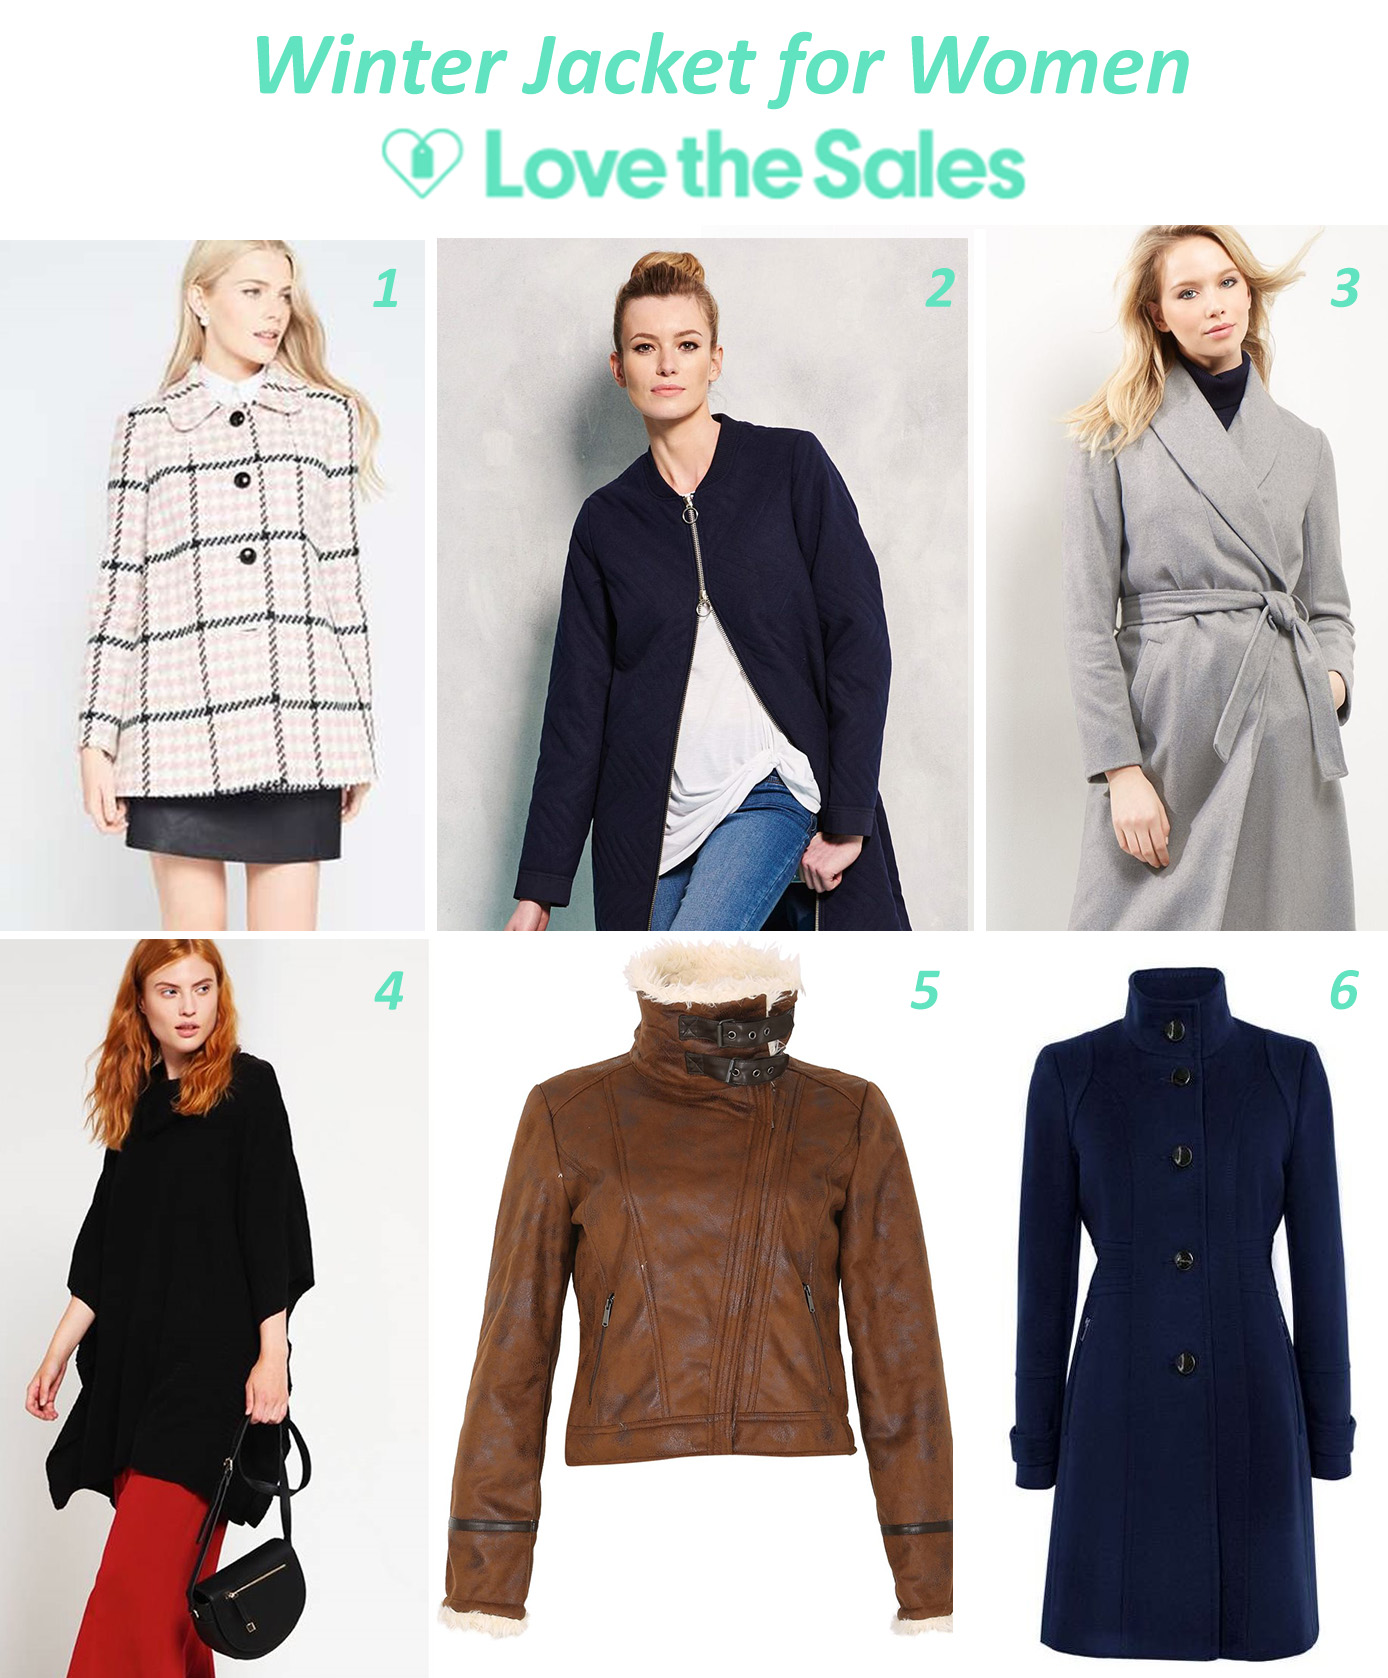 Winter Jacket for Women from Love the Sales